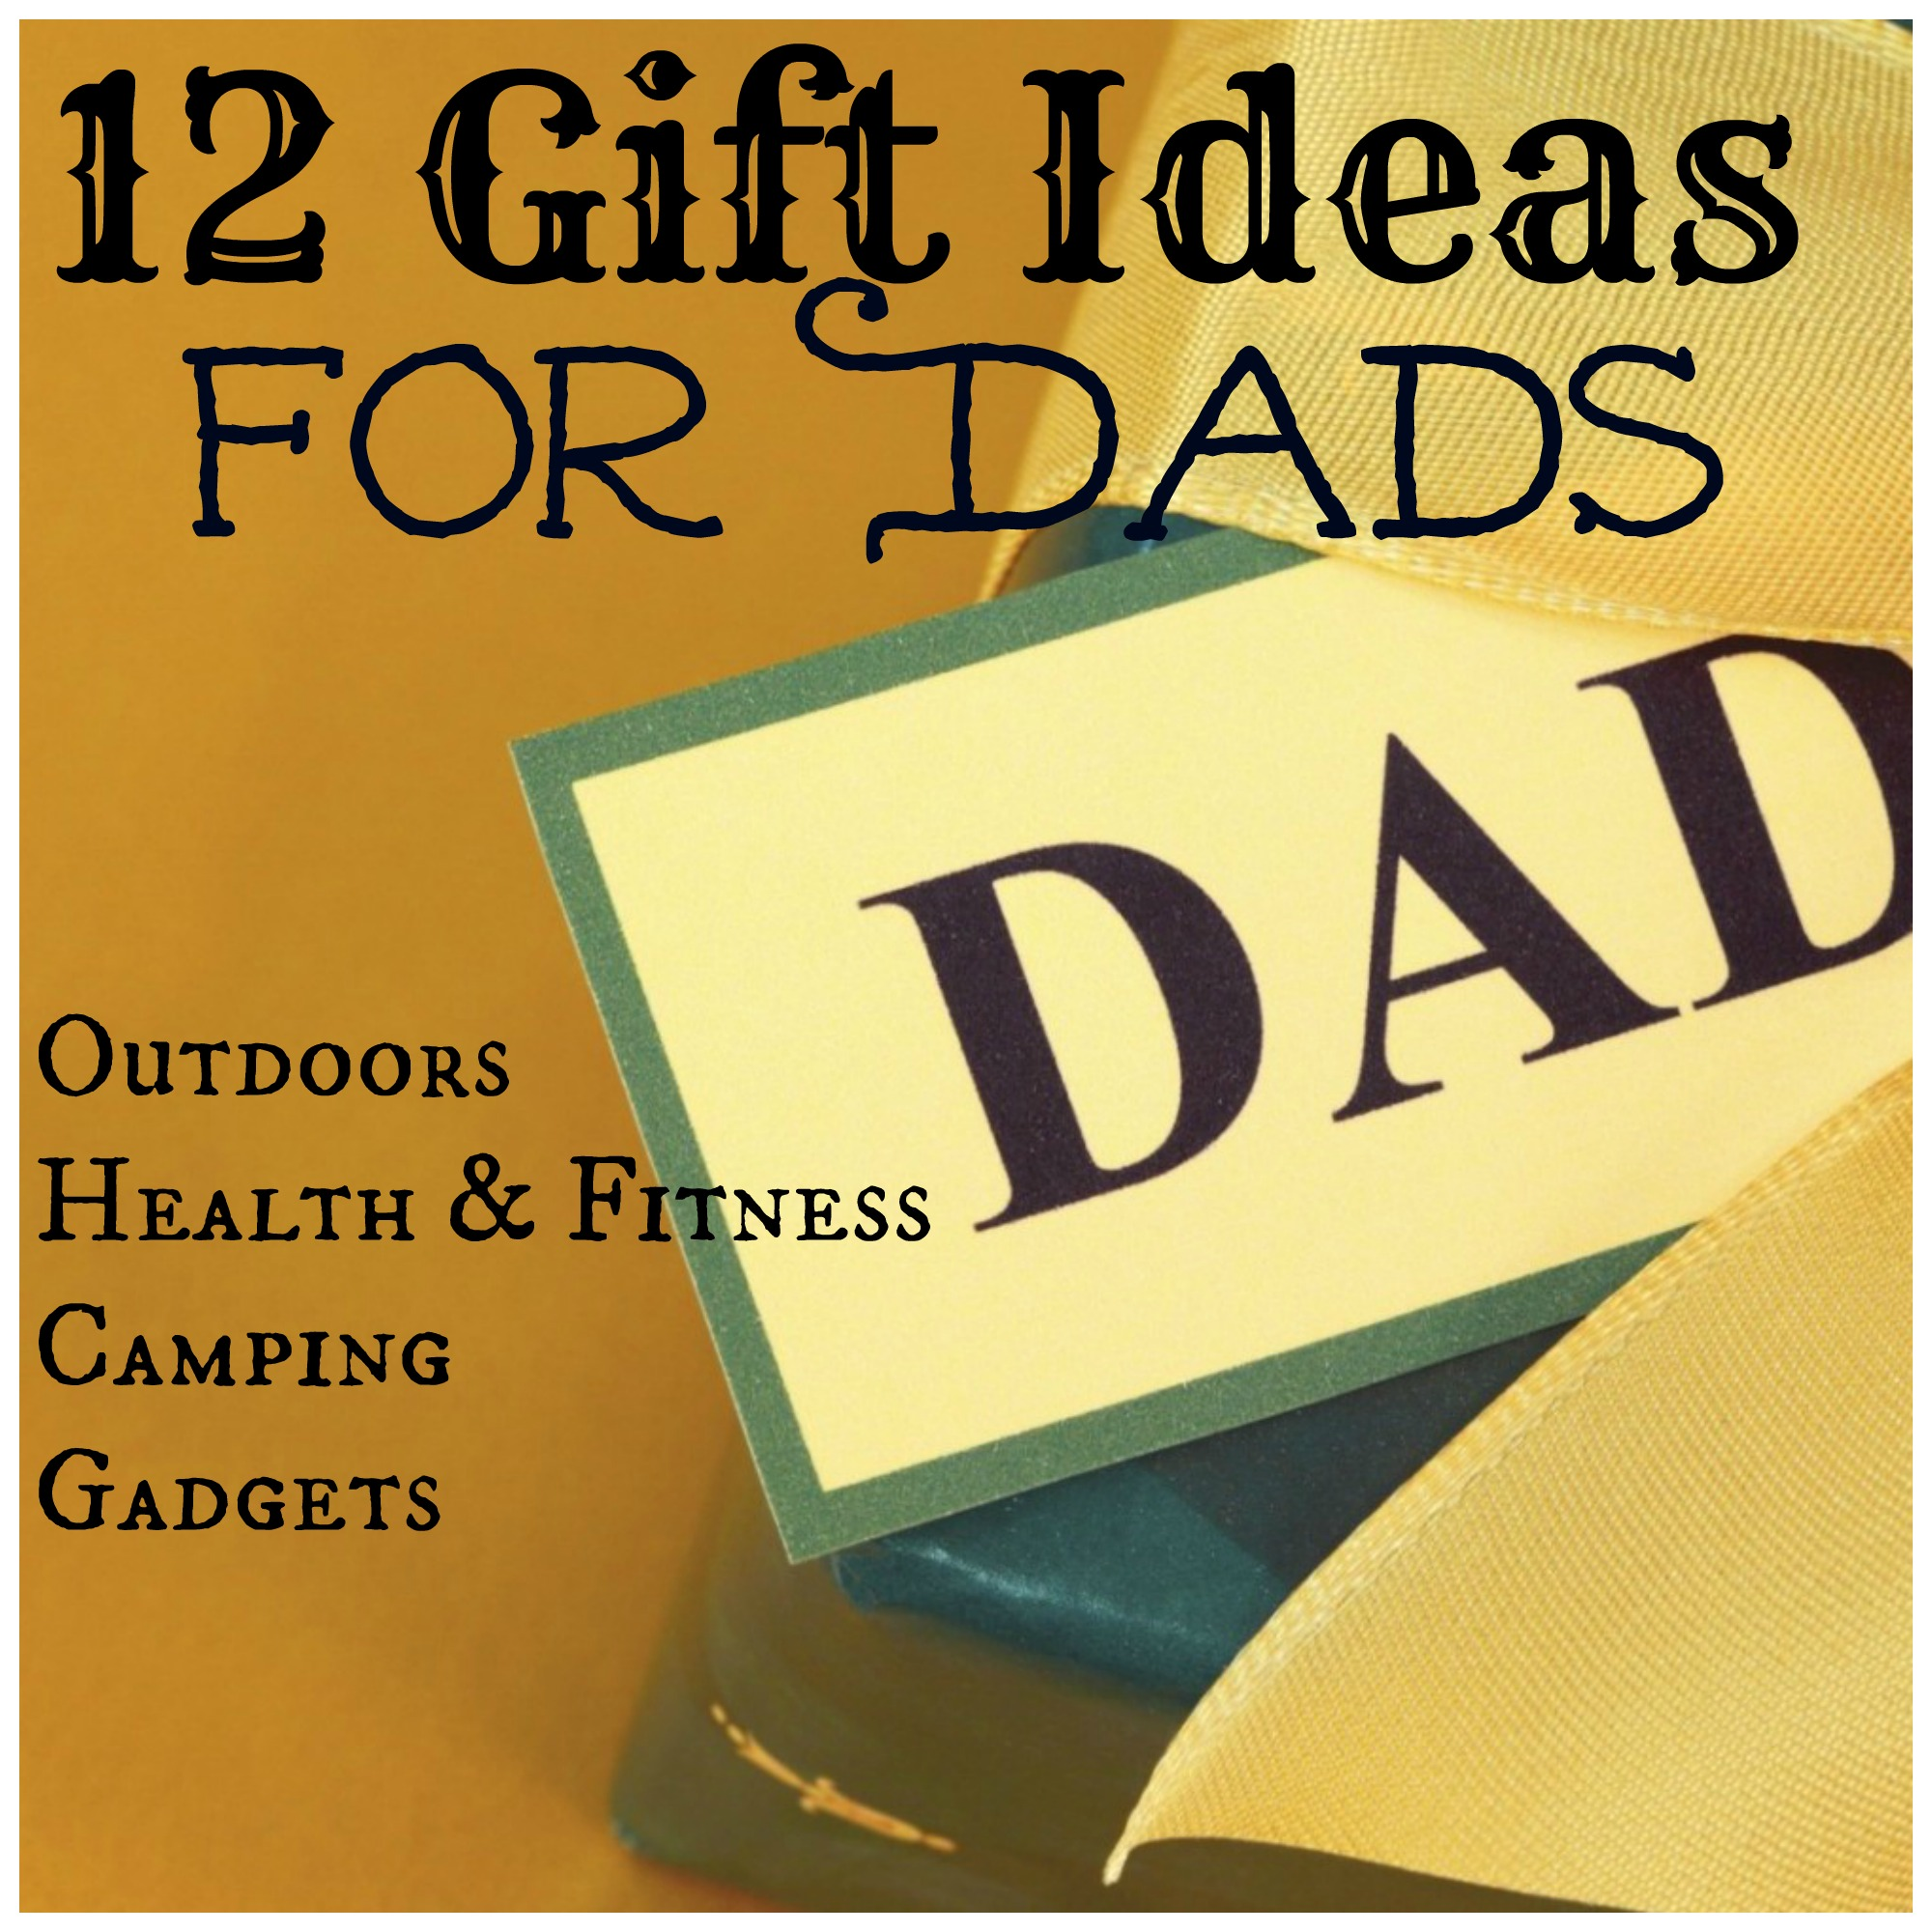 12 Gift Ideas For Dads: Outdoors, Health, Camping, Gadgets